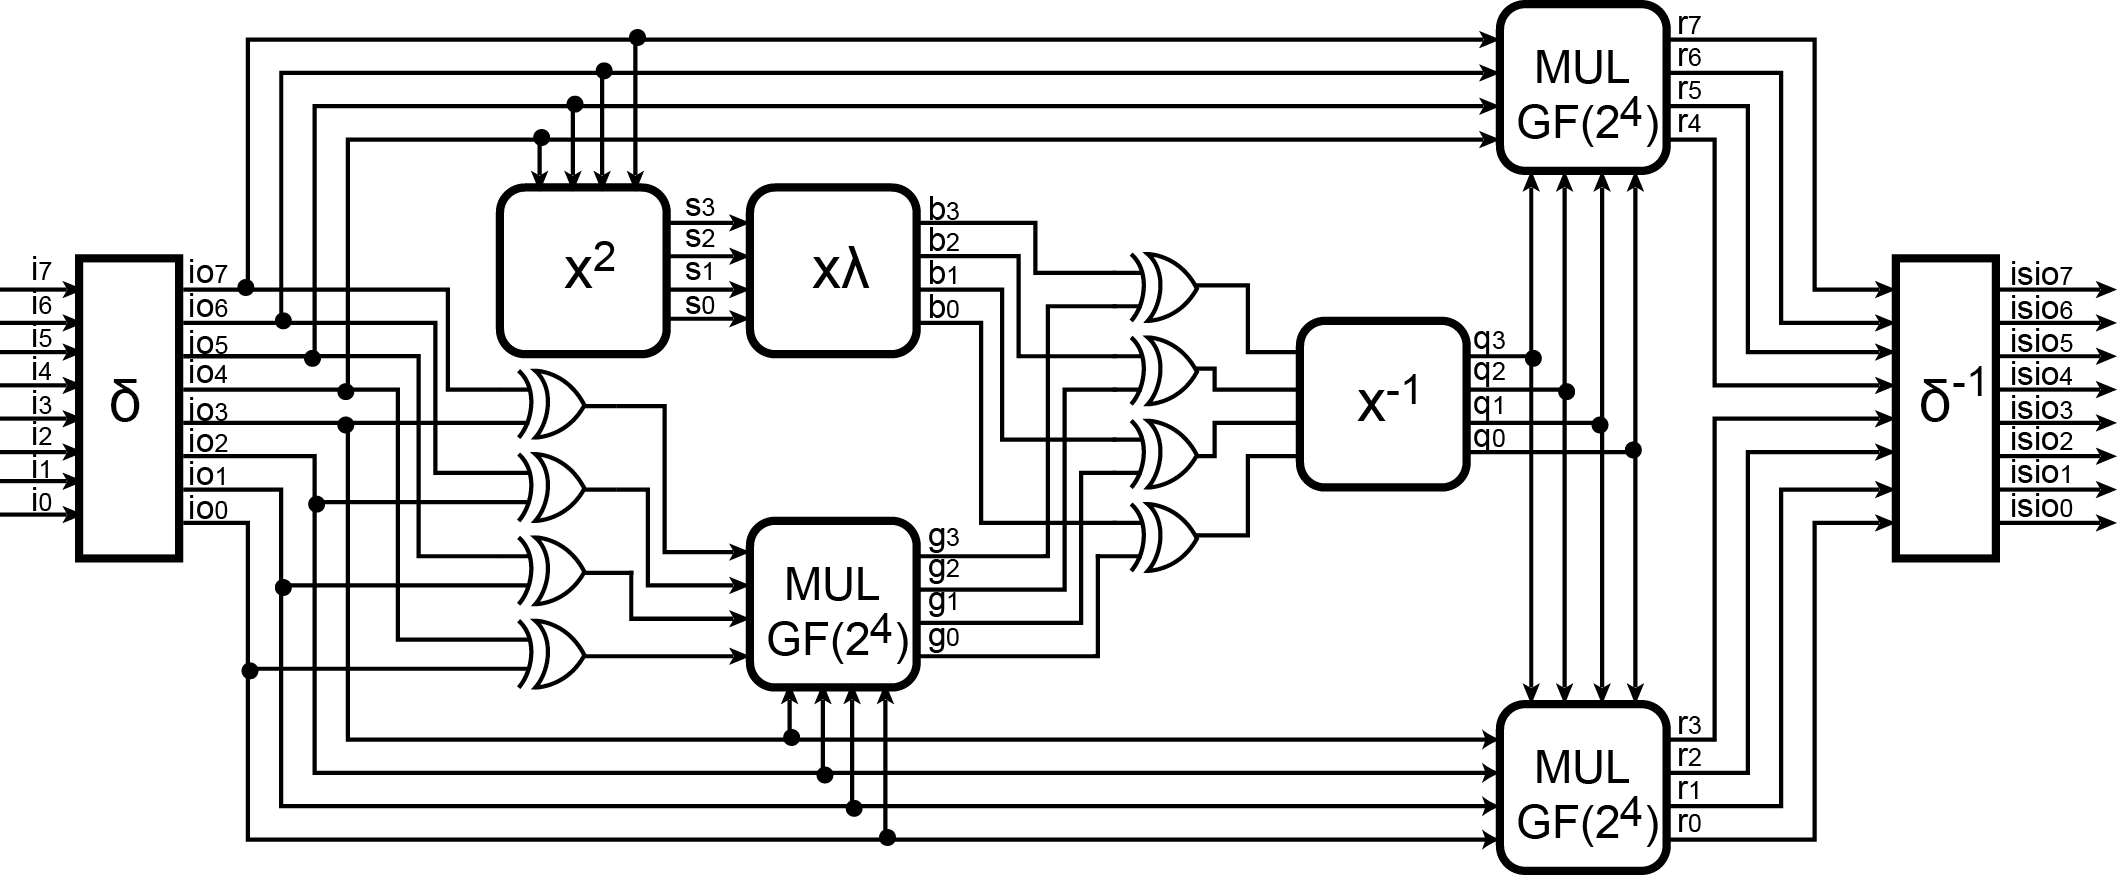 The role of depth of a circuit in its hardware